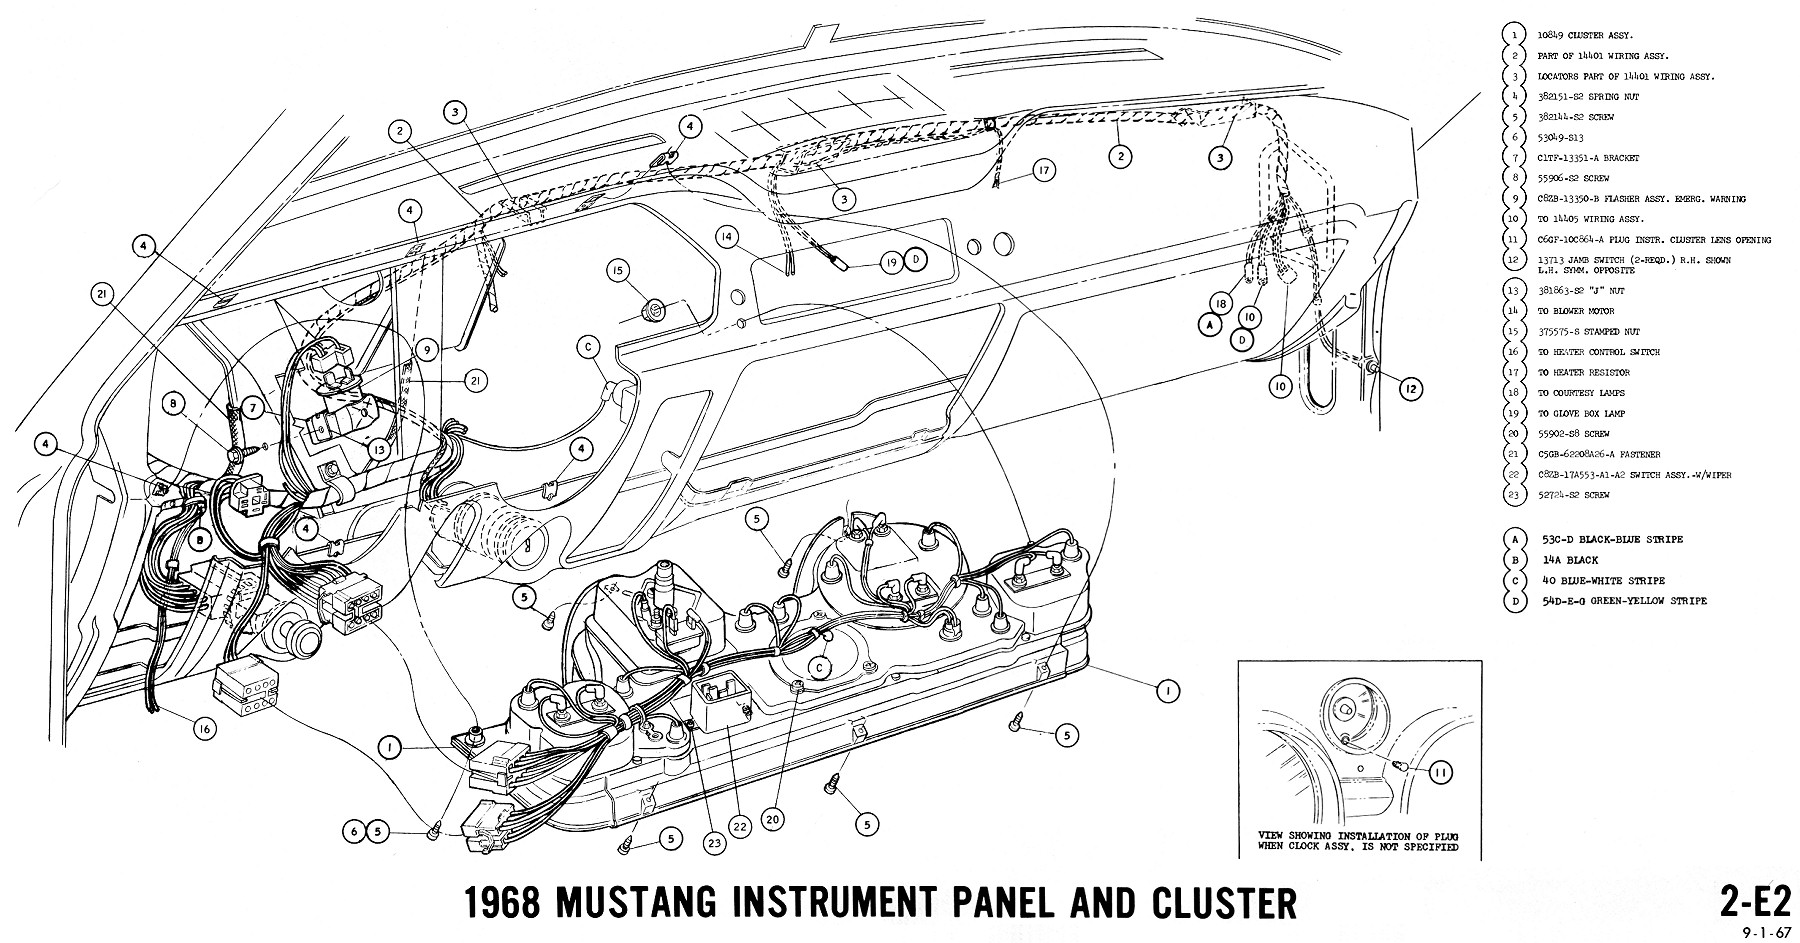 E2 65 mustang dash wiring 1965 mustang wiring harness diagram 1970 Mustang Dash Wiring Diagram at bakdesigns.co